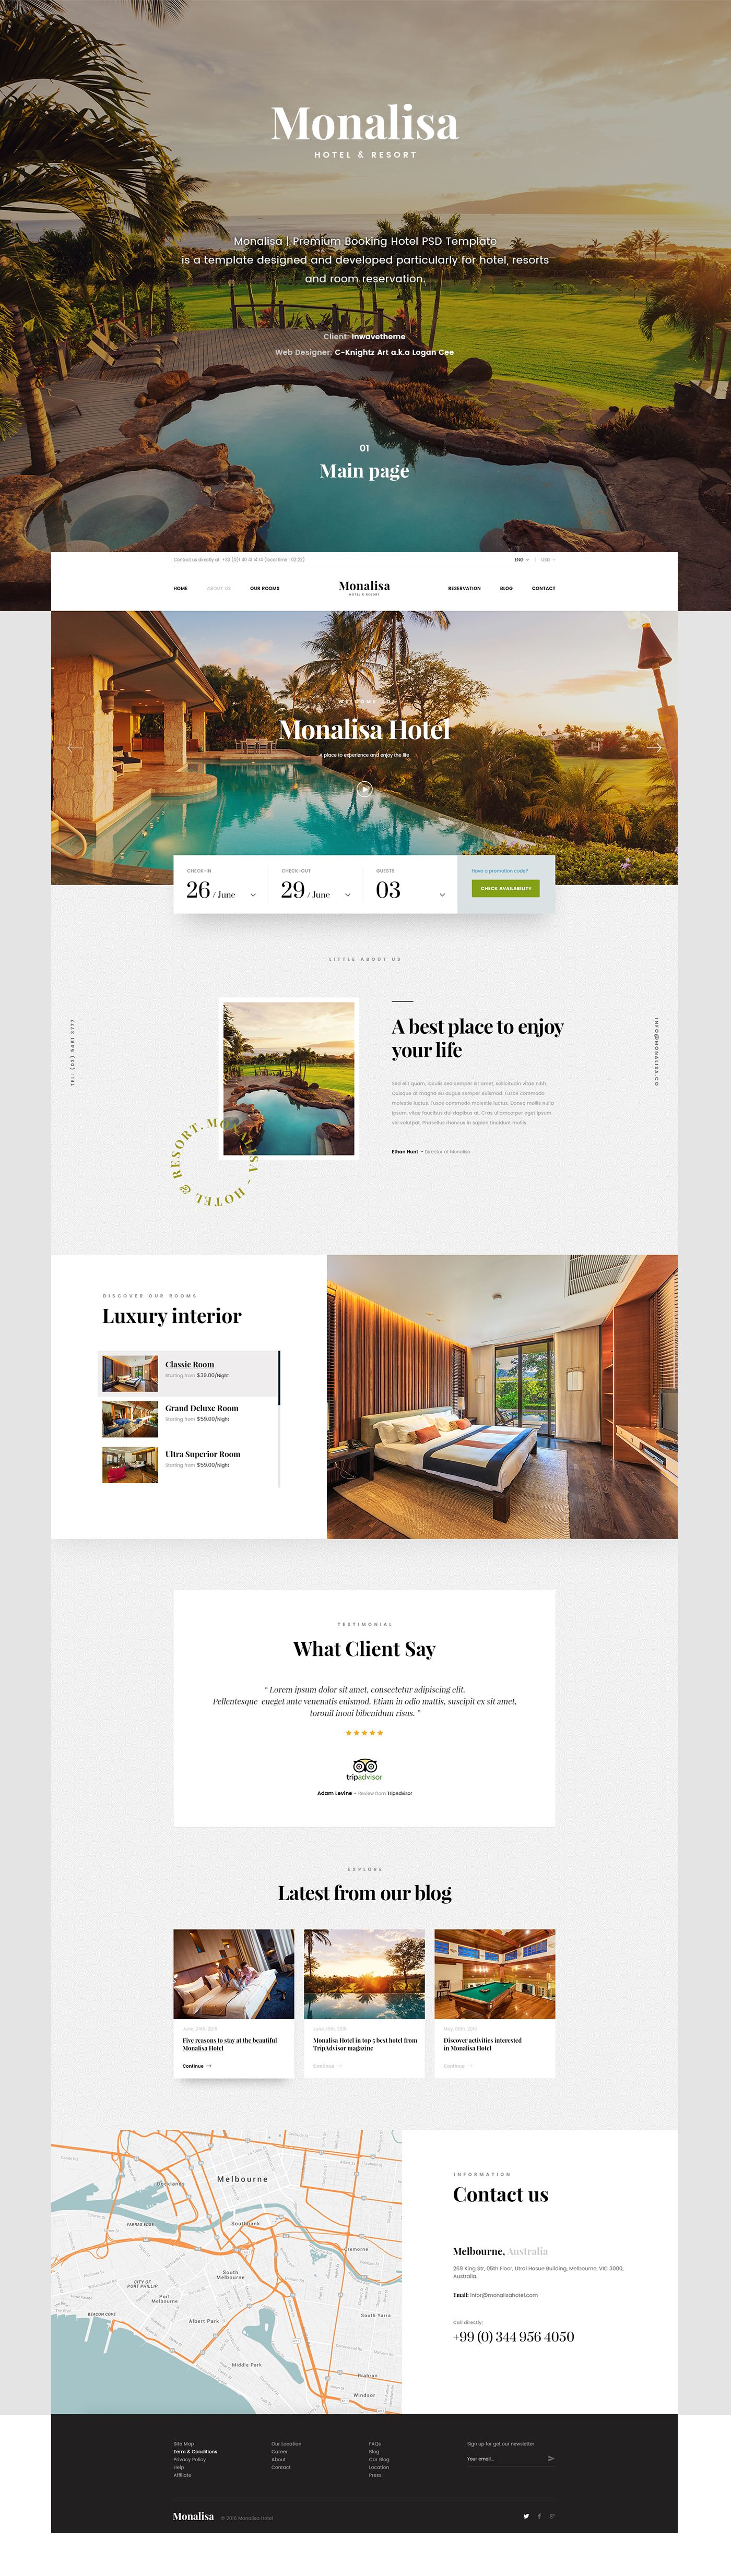 Monalisa Premium Booking Hotel Psd Template Is A Template Designed And Developed Particularly For Hotel Resorts Hotel Sites Web Layout Design Booking Hotel